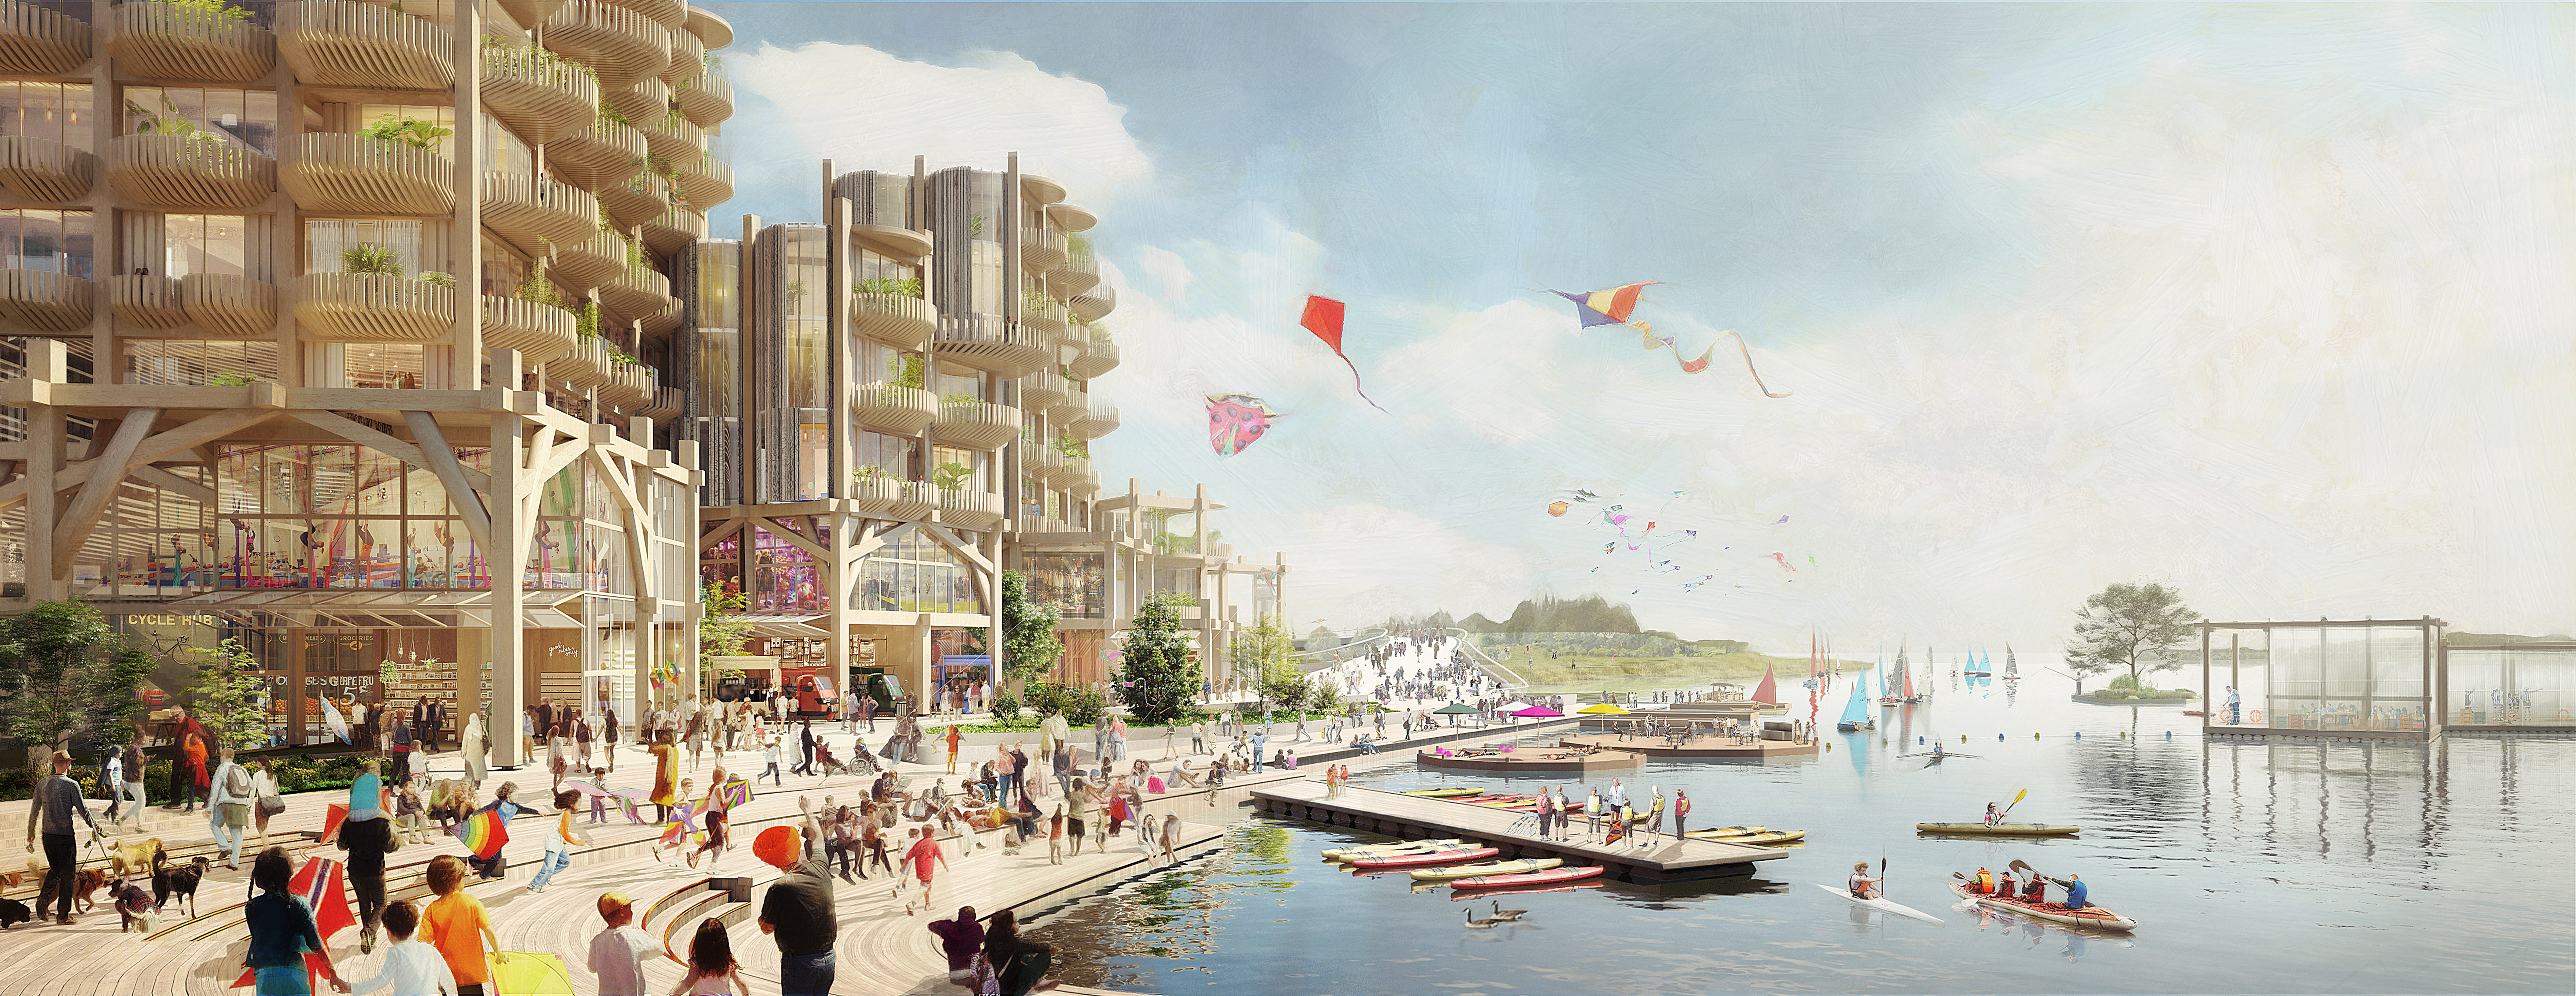 A rendering of an idealized neighborhood with modern buildings made from timber and people walking on a waterfront promenade and flying kites.